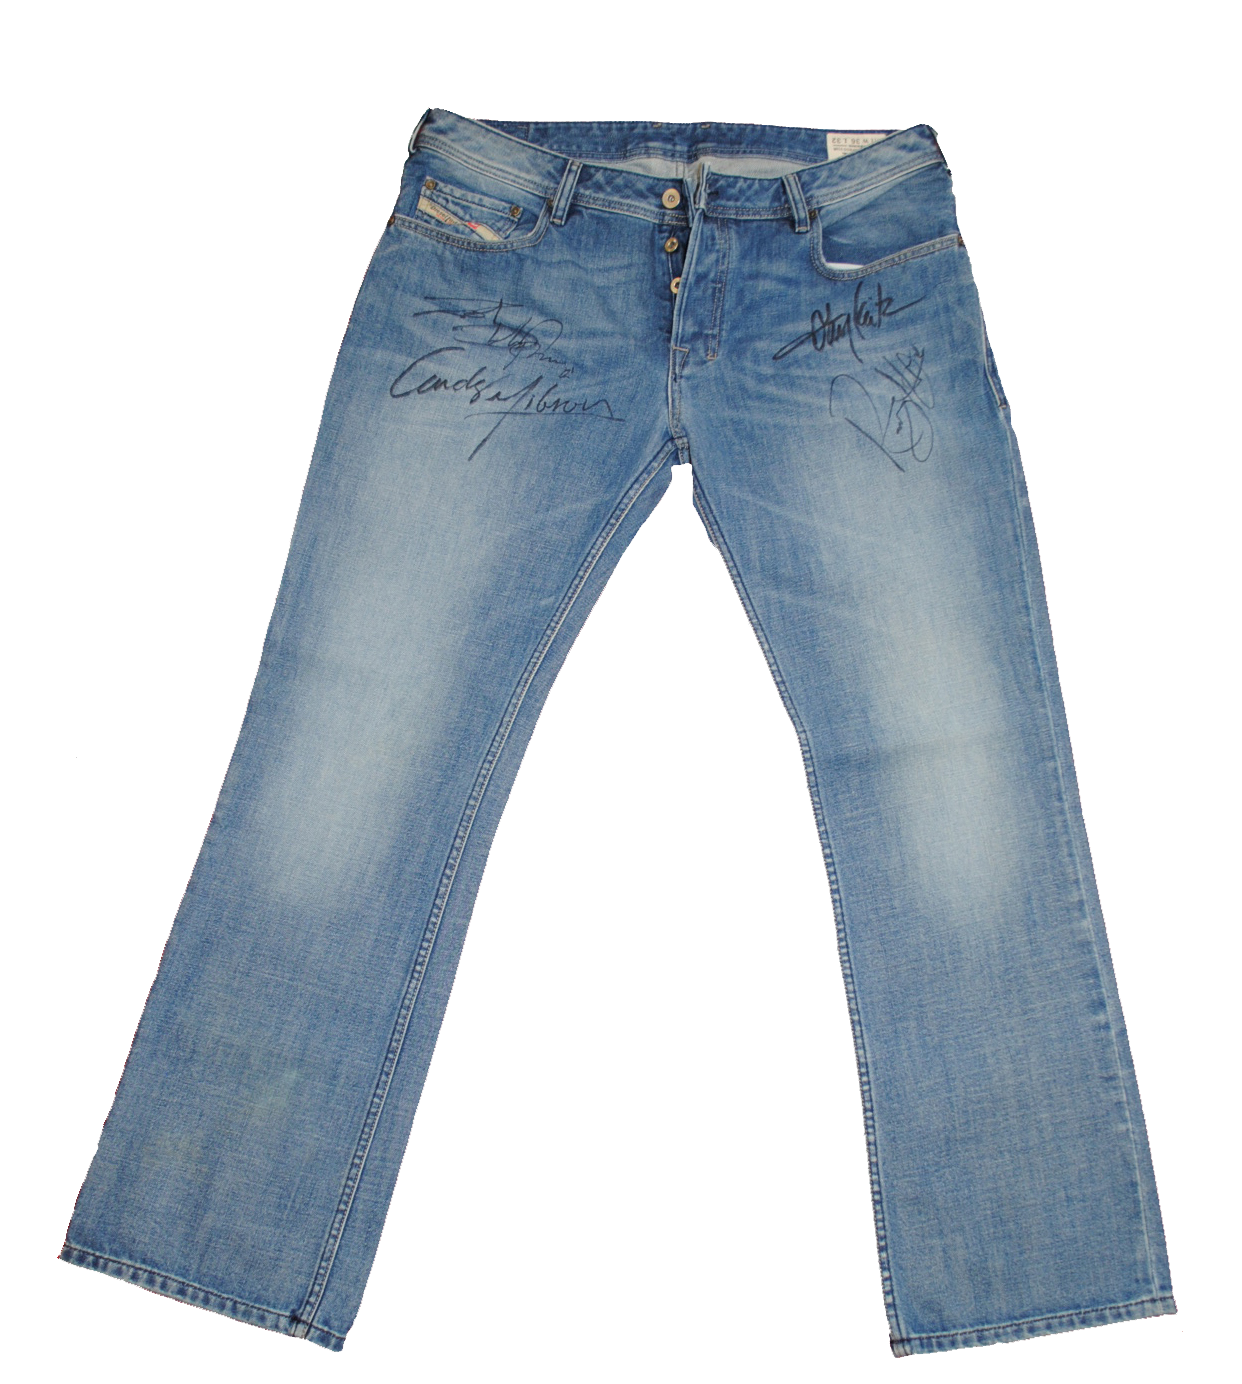 Jeans PNG - 16053